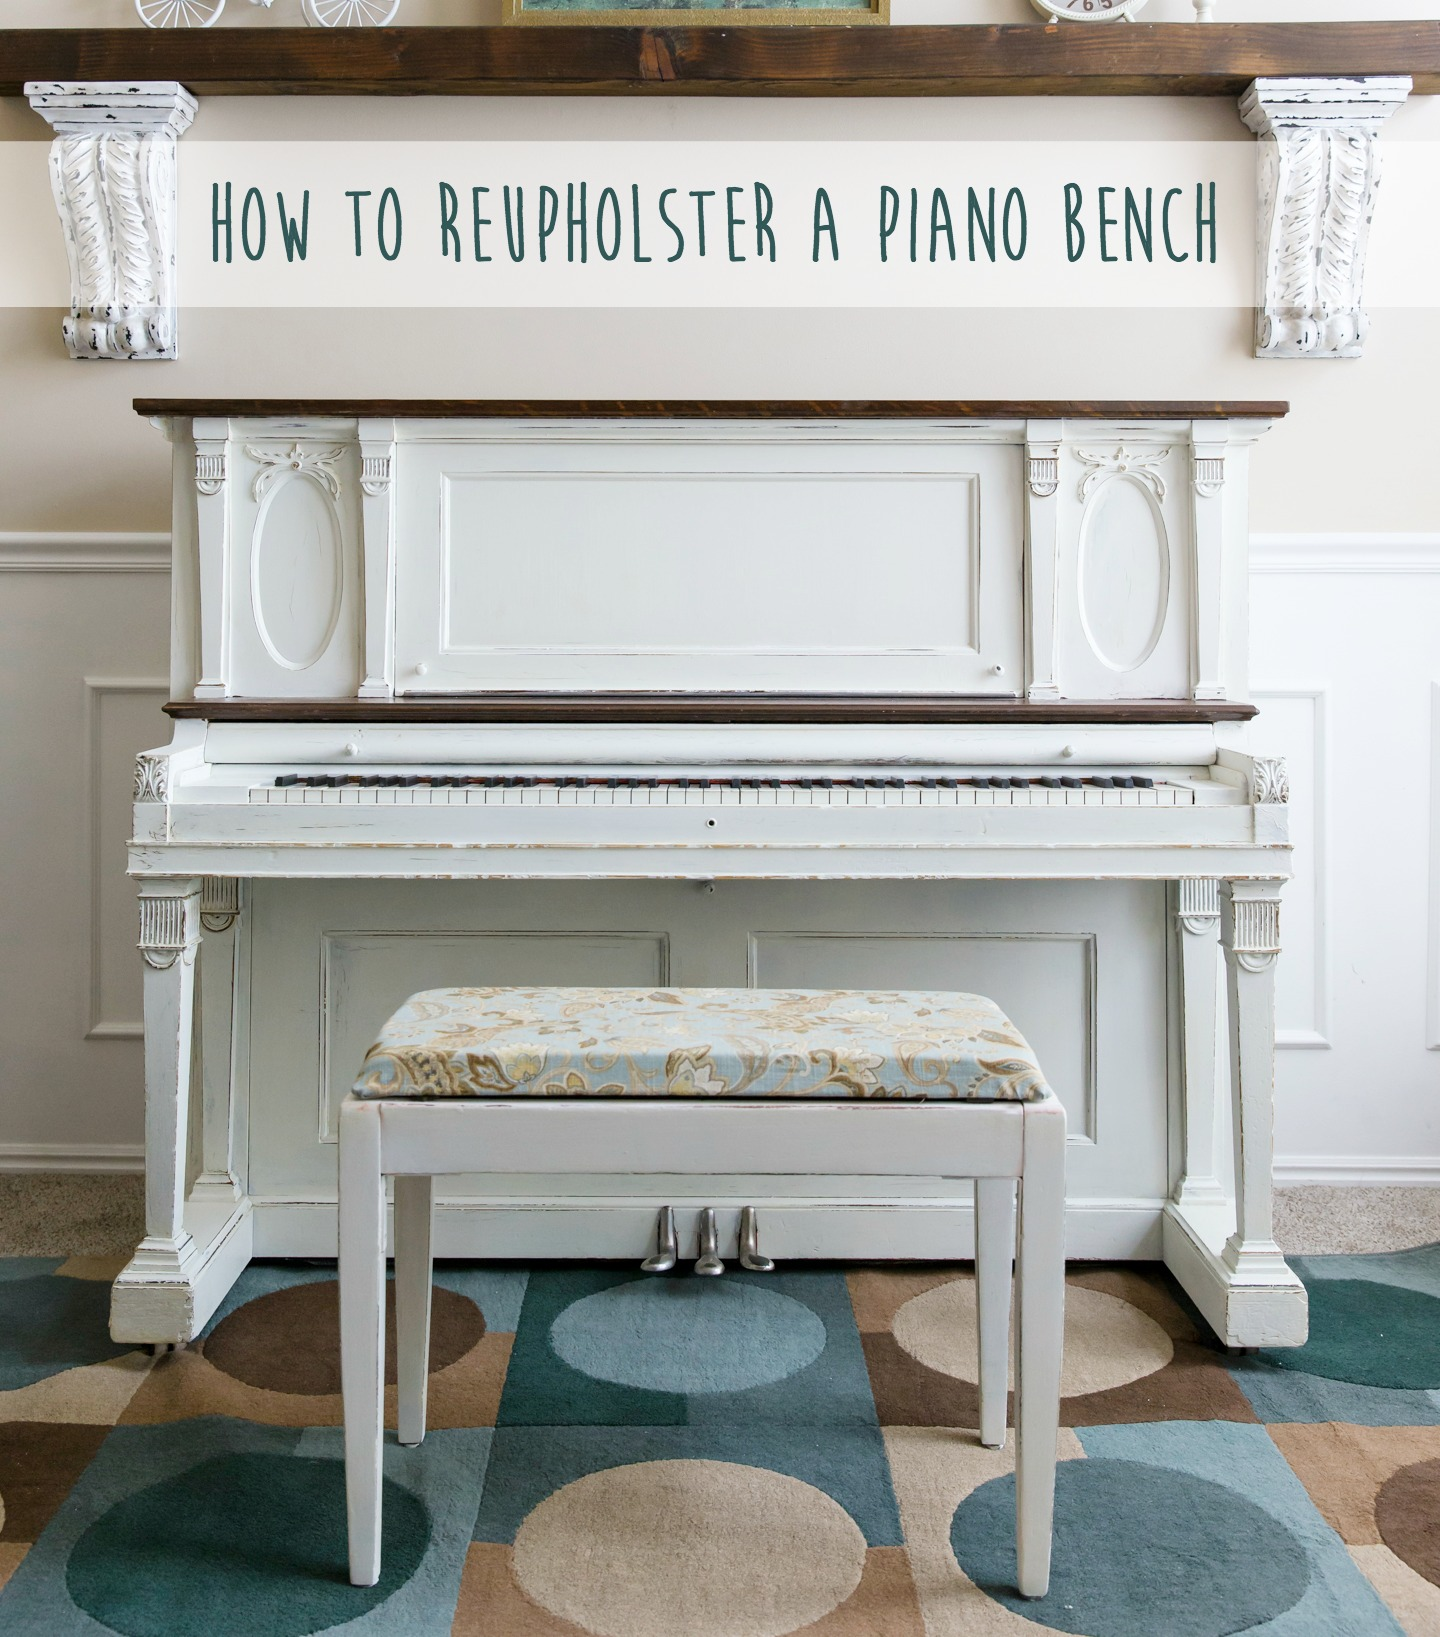 How to Reupholster a Piano Bench by U Create